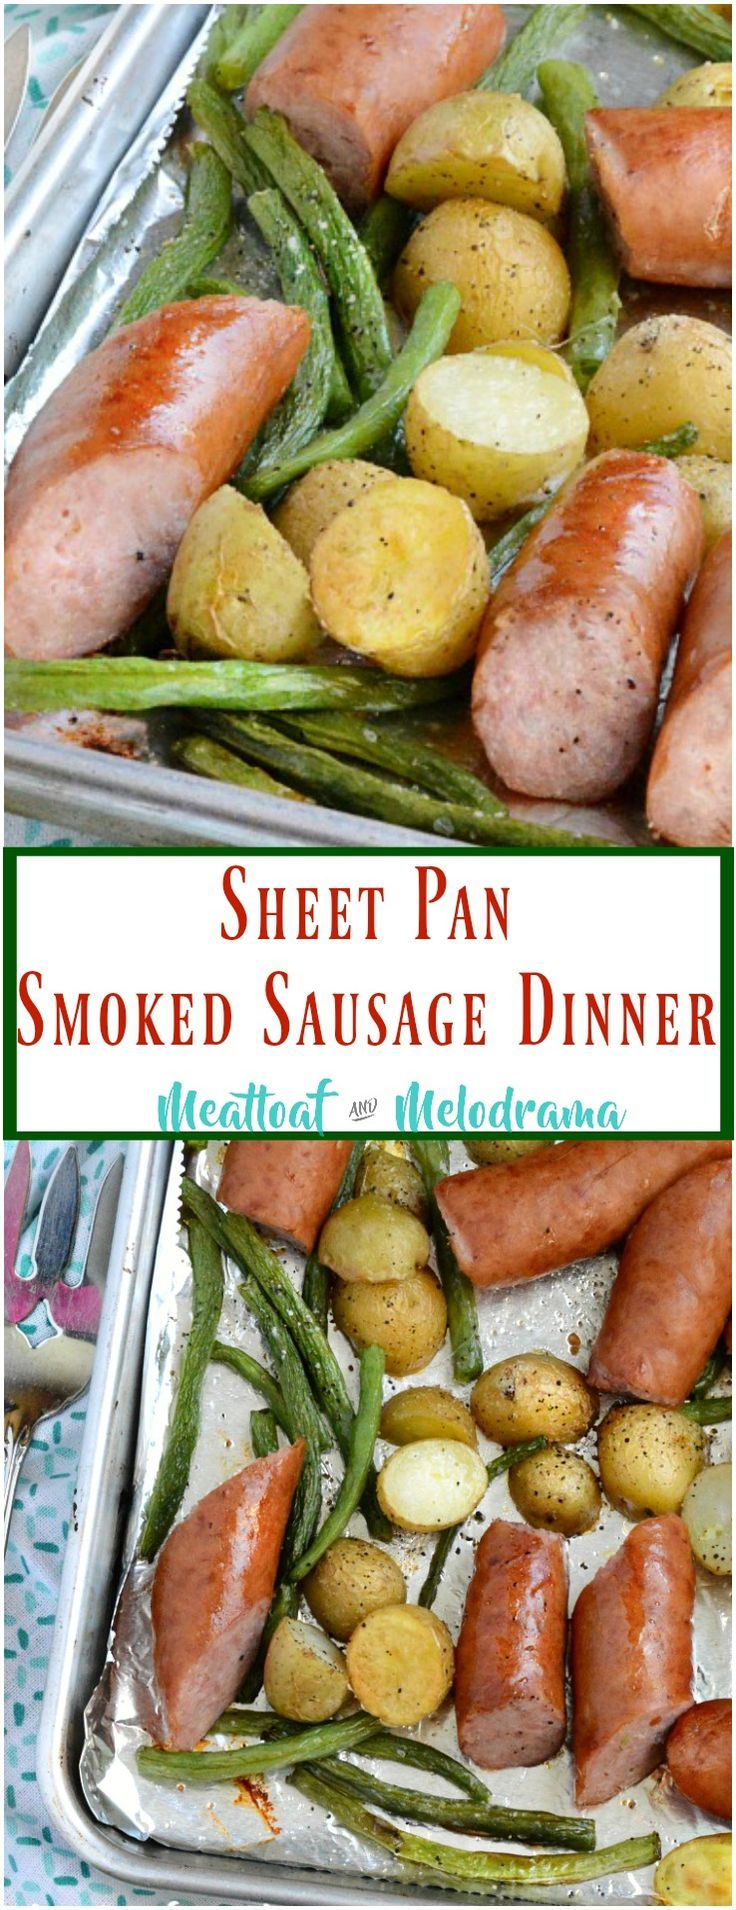 Sheet Pan Smoked Sausage Dinner - Easy One pan kielbasa with roasted potatoes and green beans cooks in 25 minutes with easy clean-up too! from Meatloaf and Melodrama